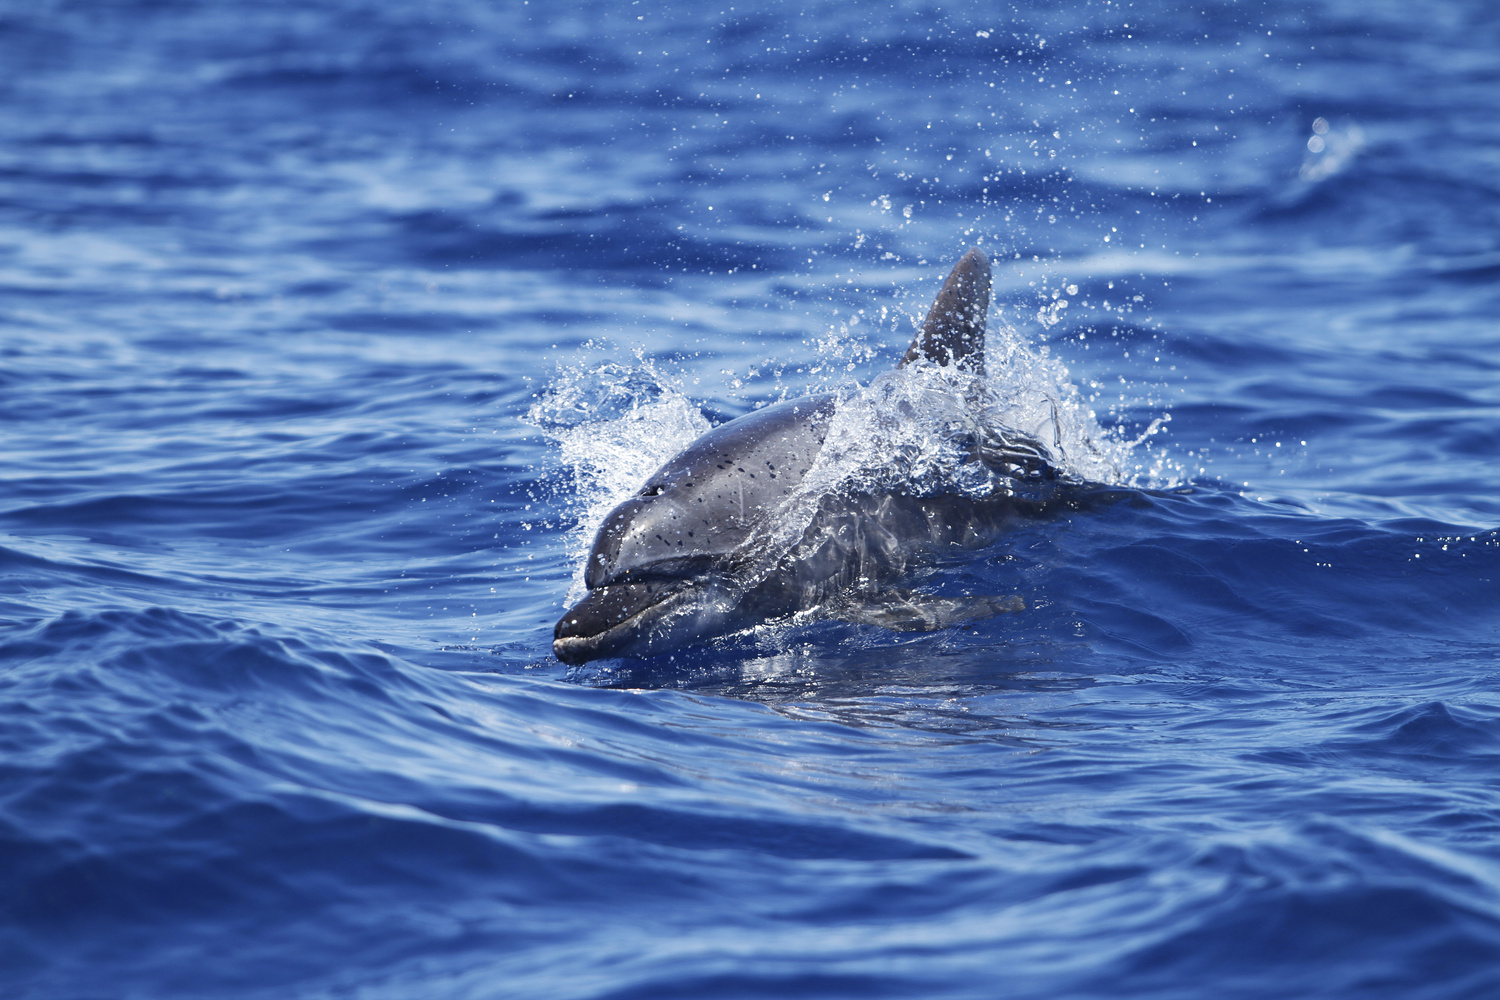 Dolphin Day Out by Shayne Holzheimer